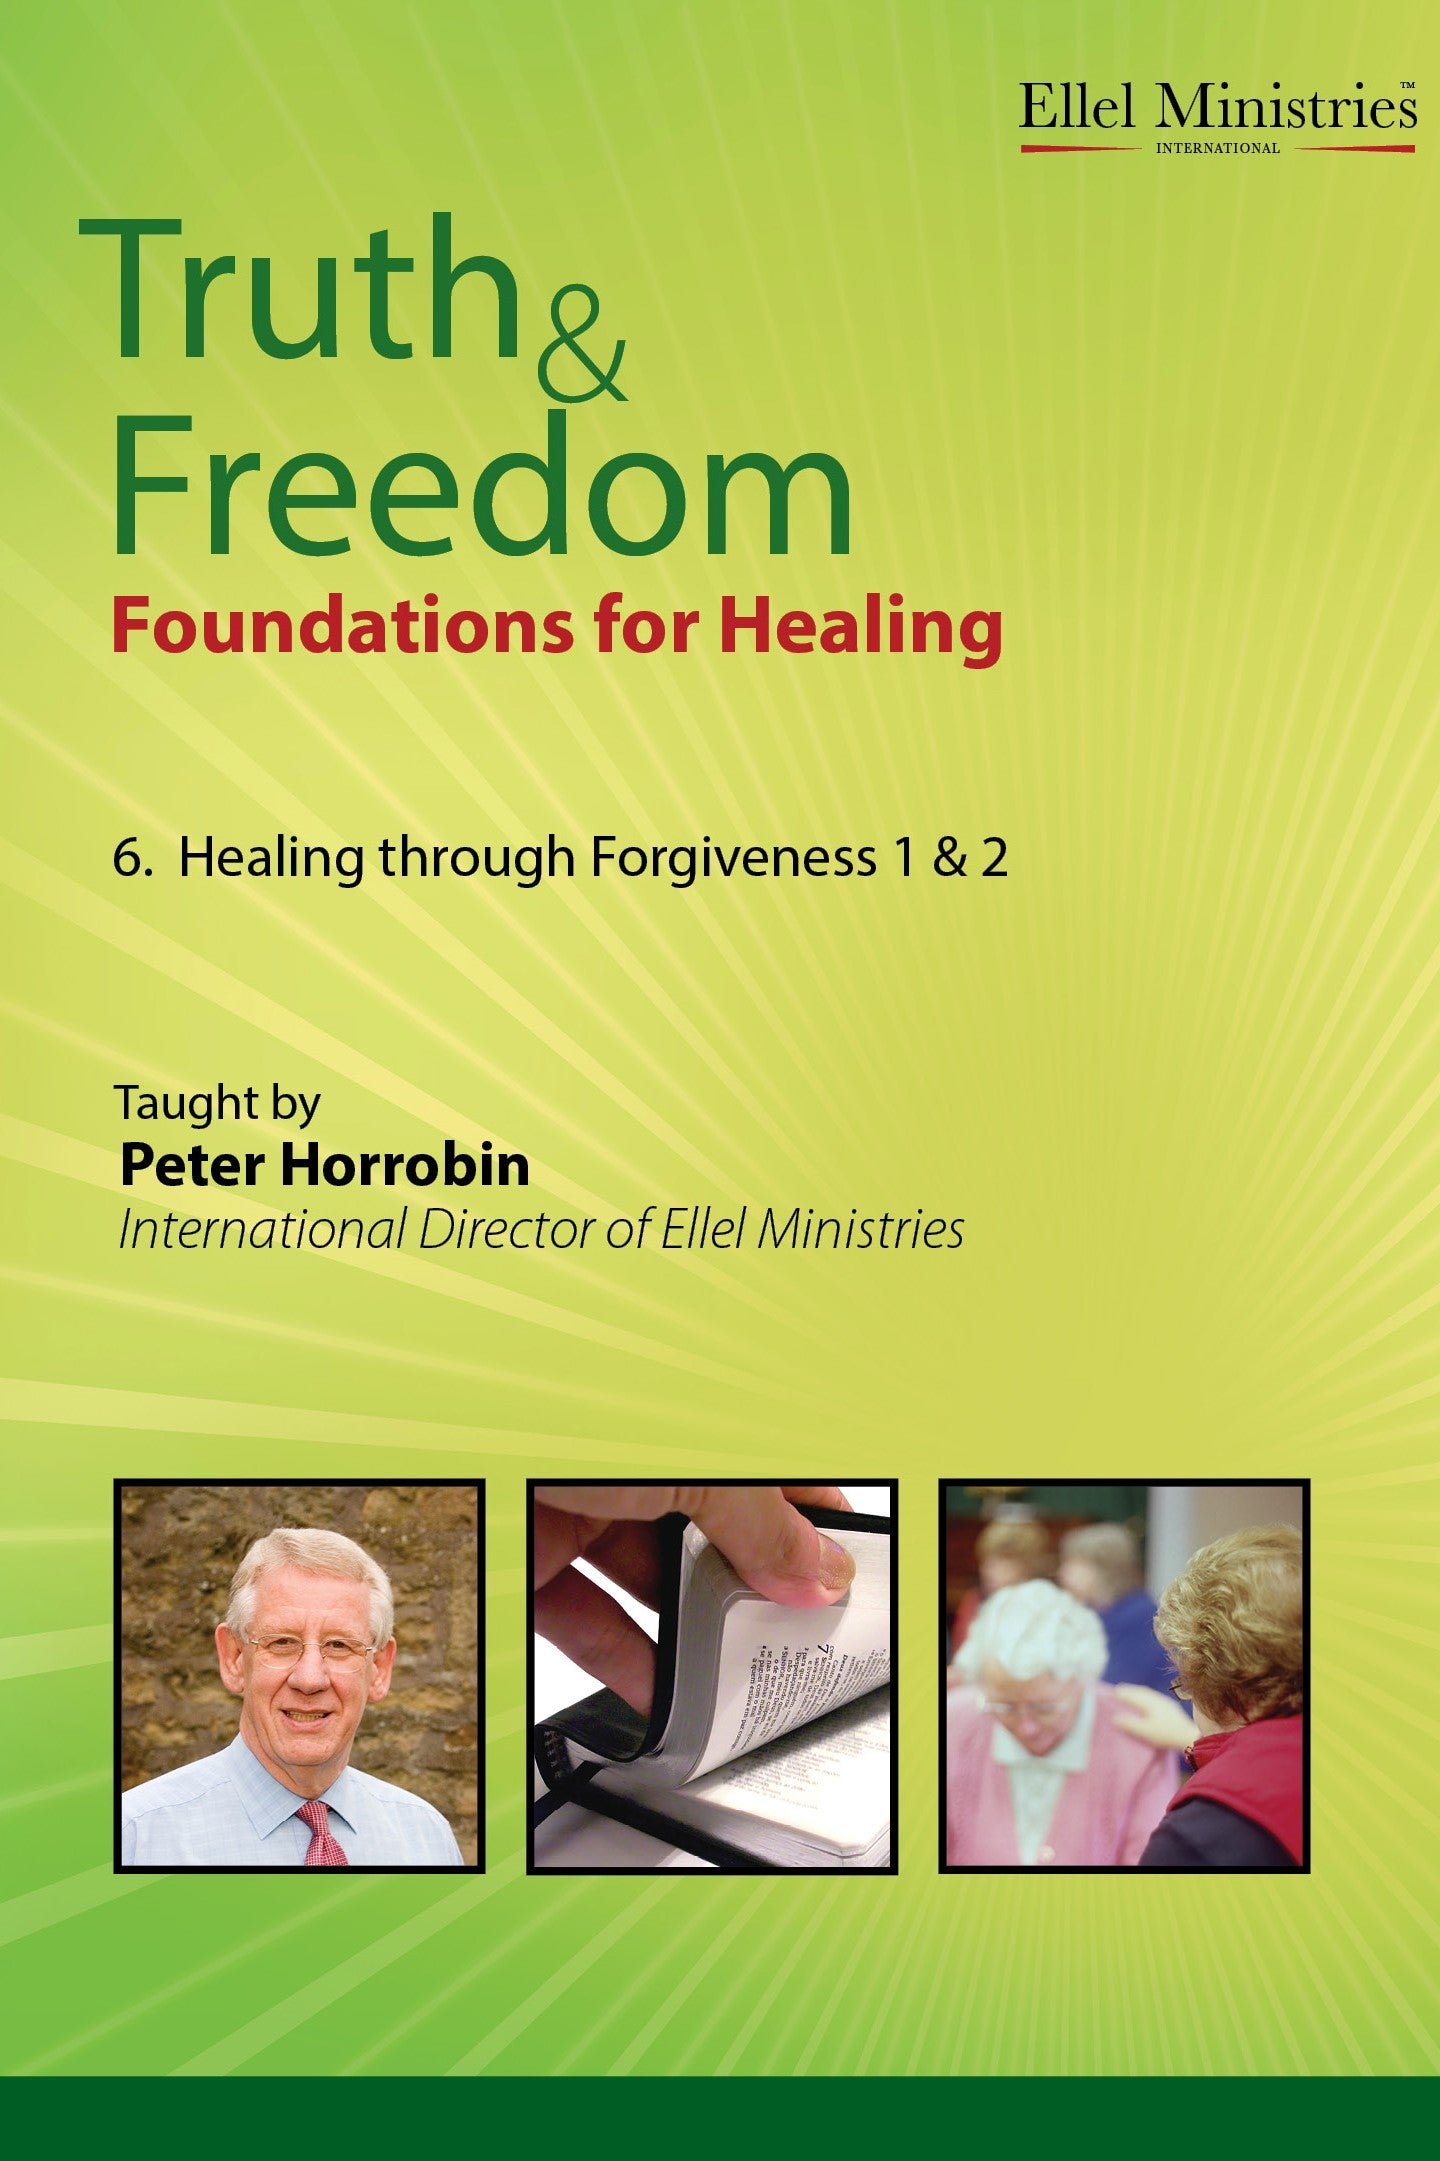 Healing through Forgiveness